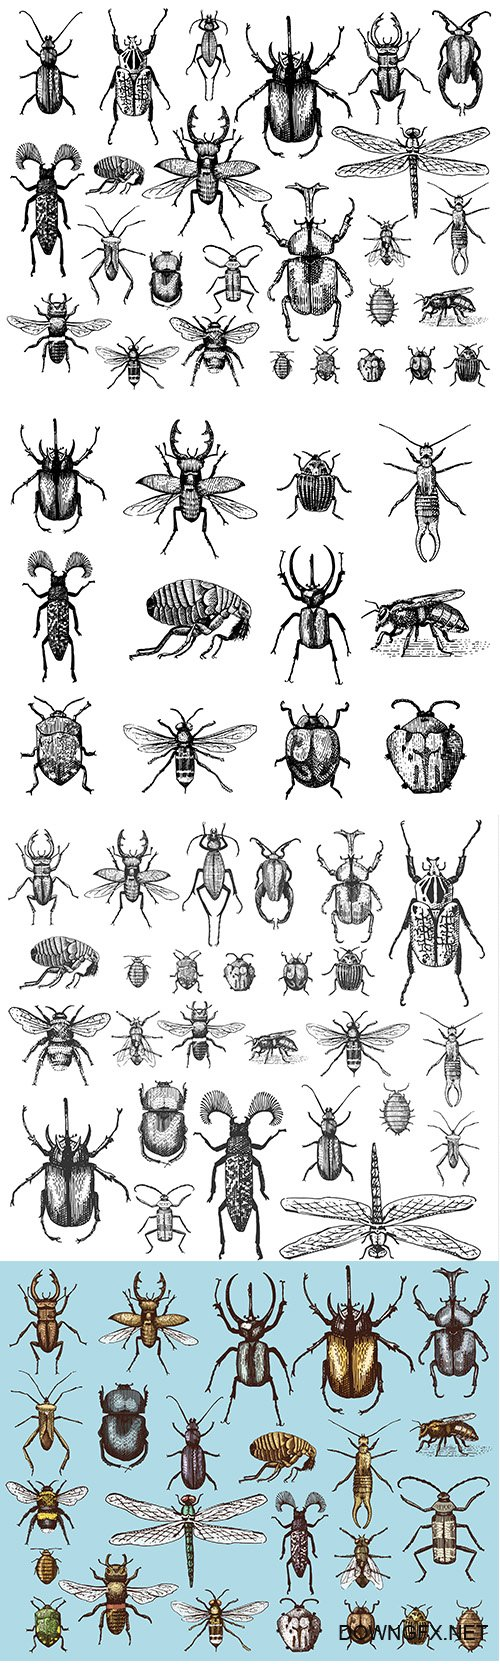 Big set of insects bugs beetles and bees in vintage old hand drawn style